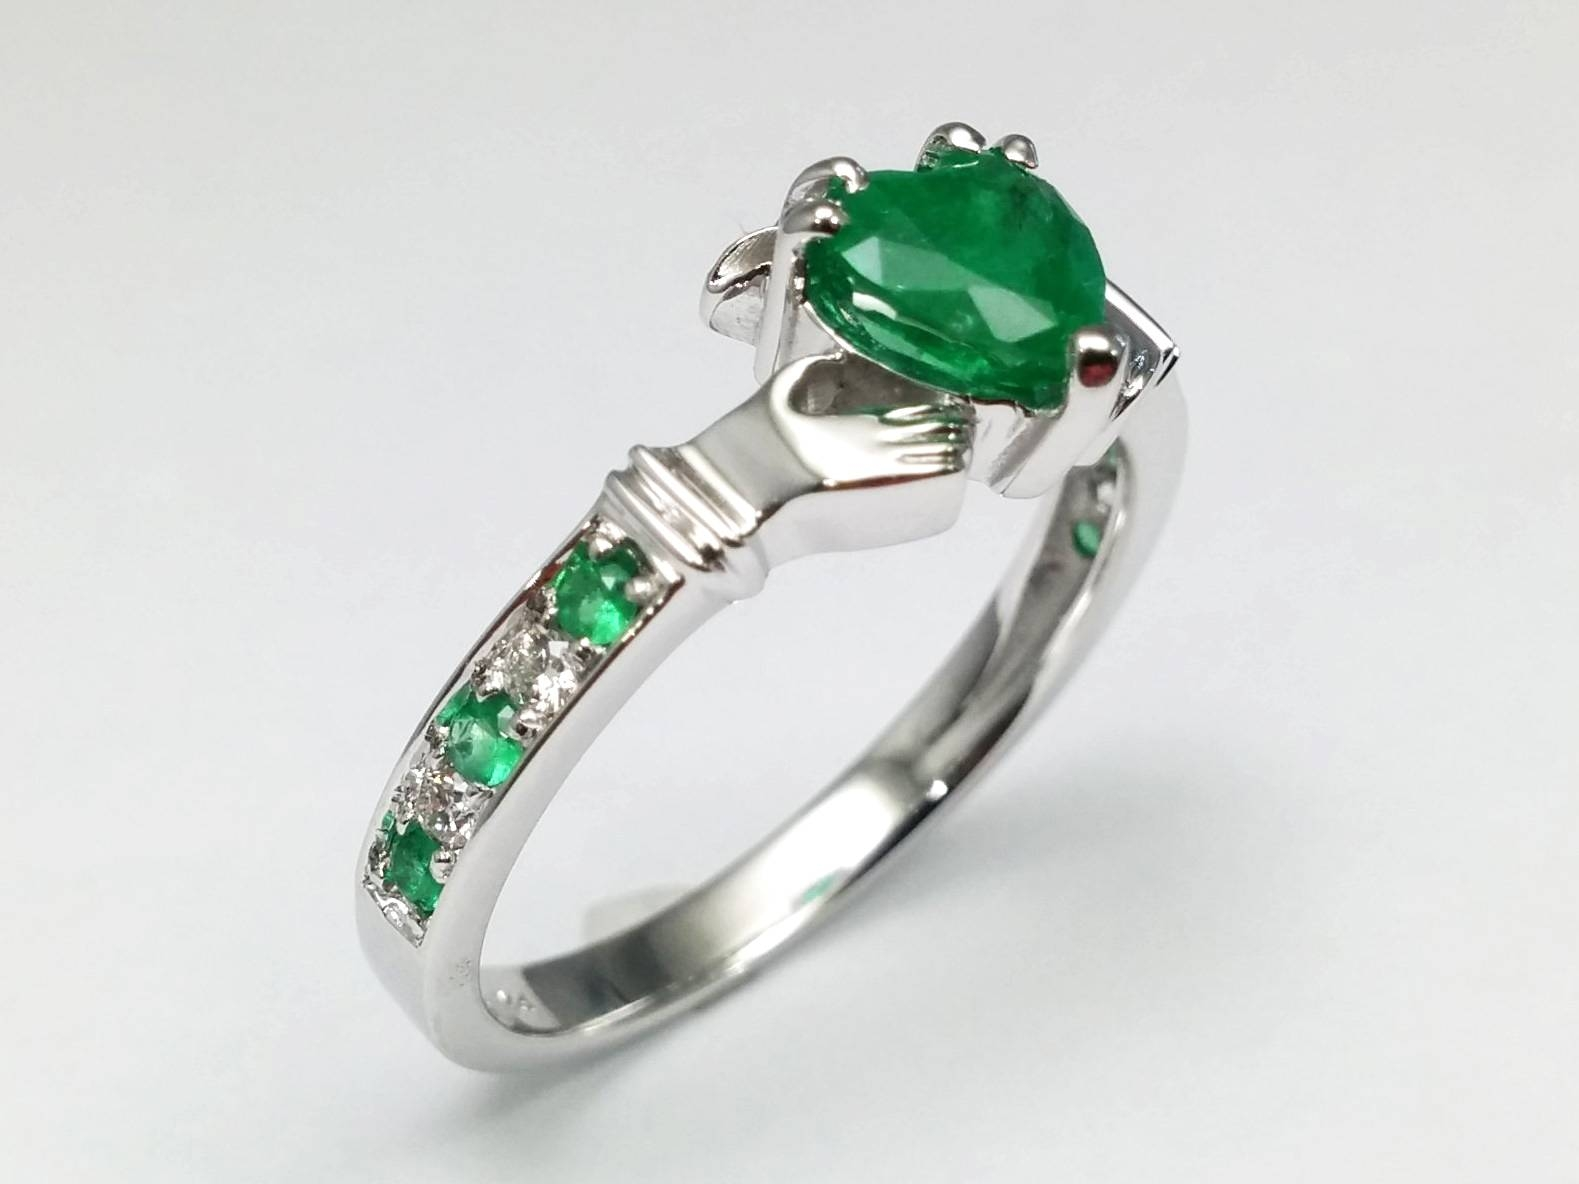 Claddagh – European Engagement Rings From Mdc Diamonds Nyc With Regard To Emerald Claddagh Engagement Rings (View 4 of 15)